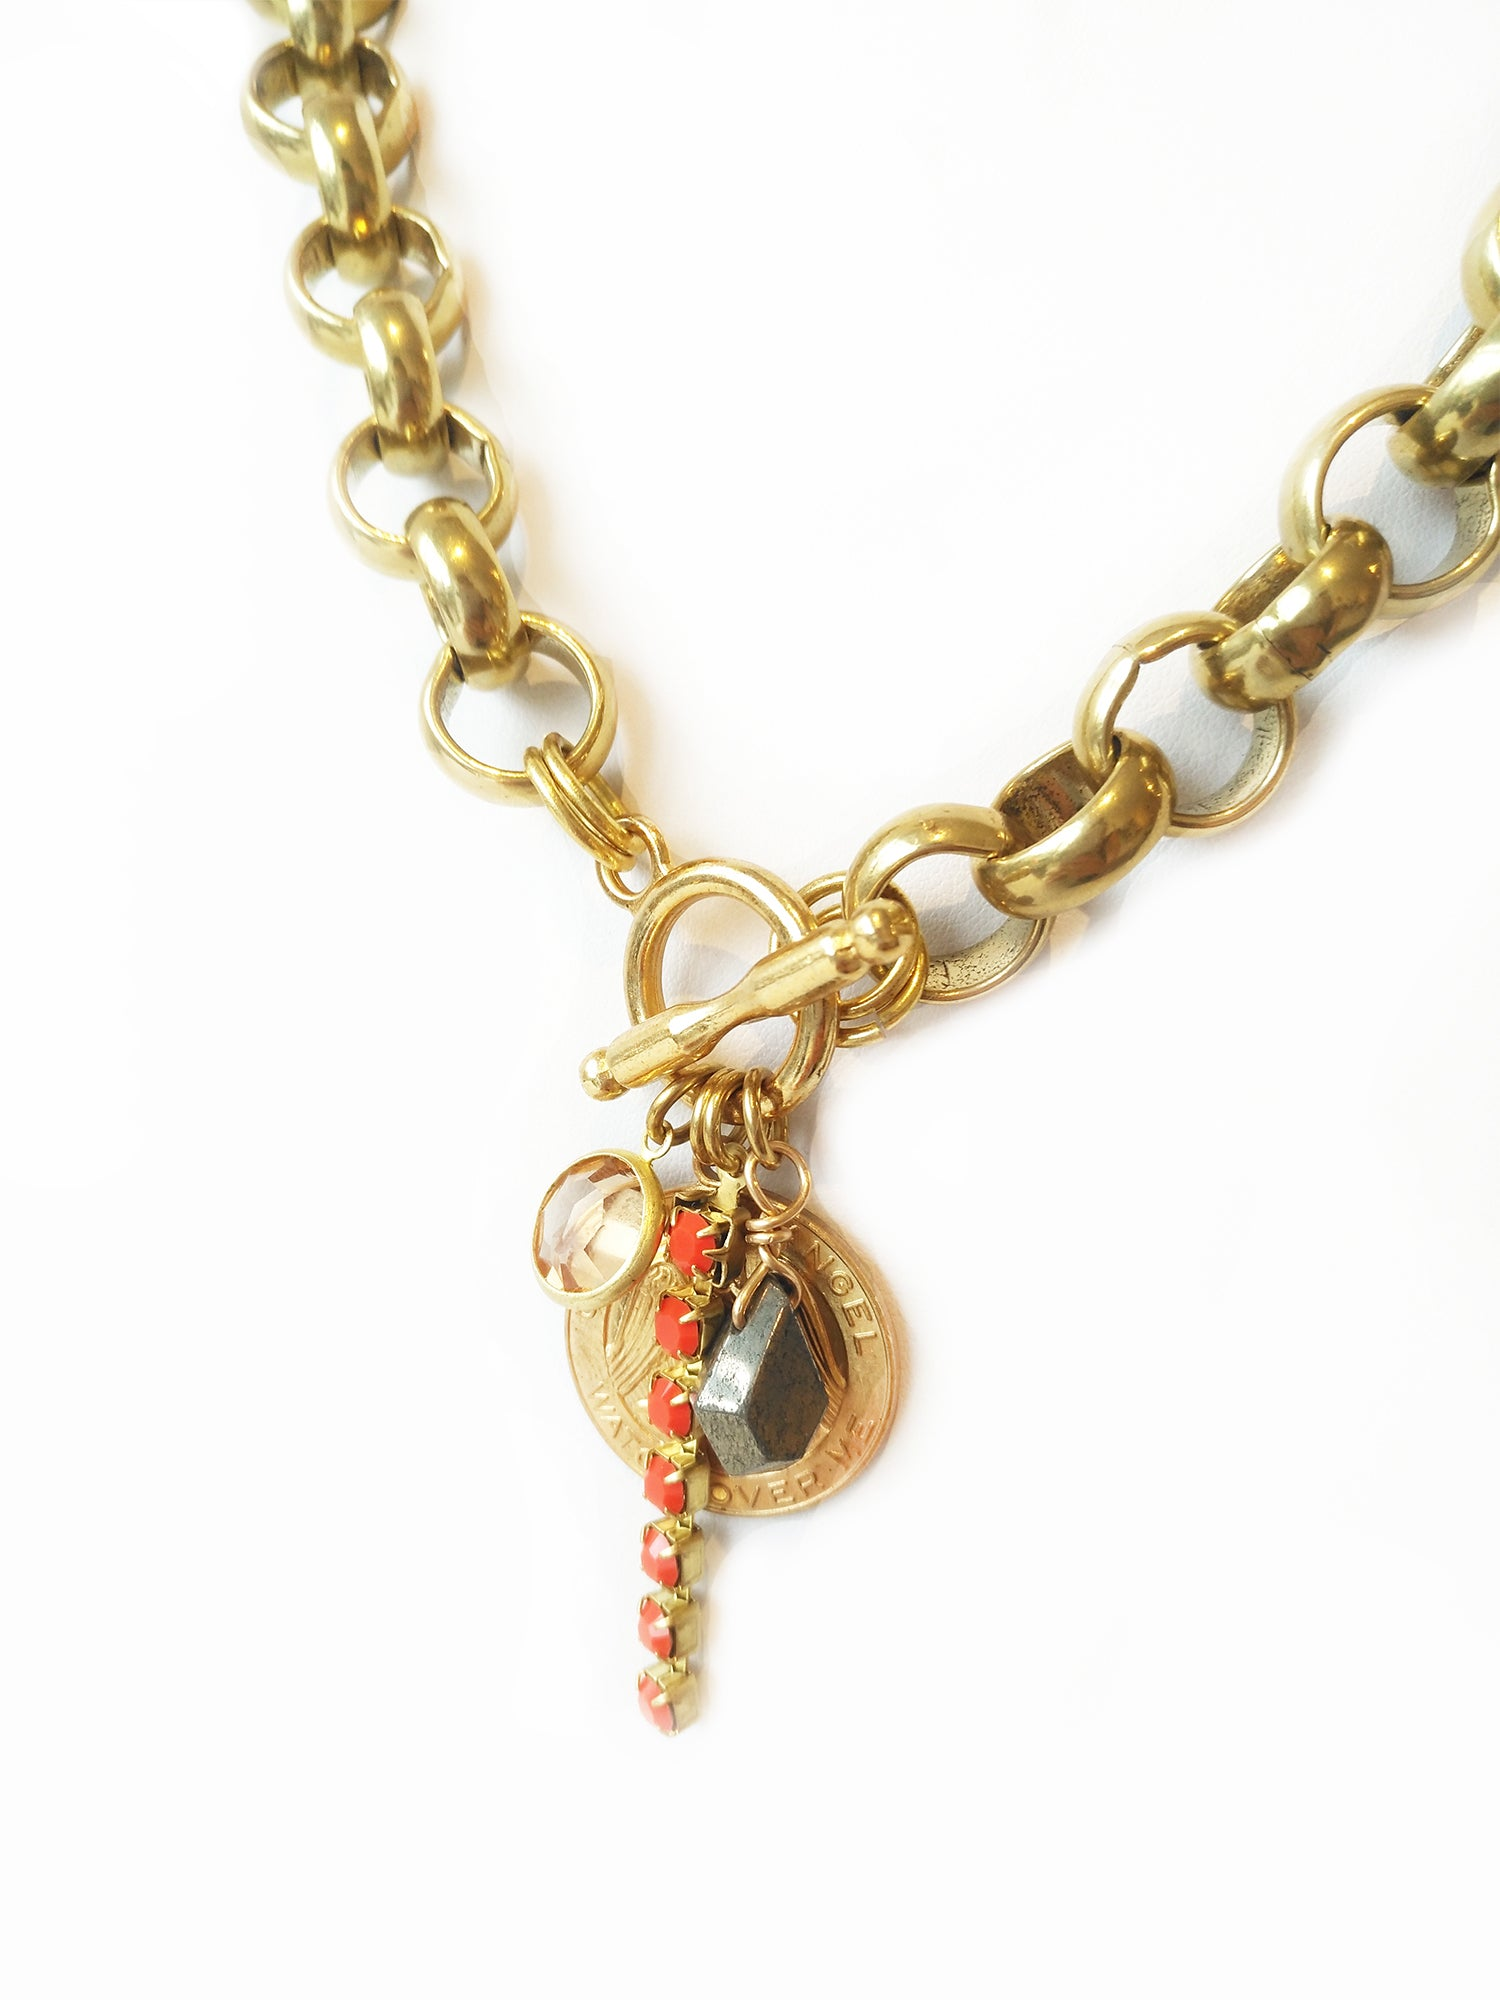 Annabelle Big Gold Belcher Chain Necklace with Toggle in Front